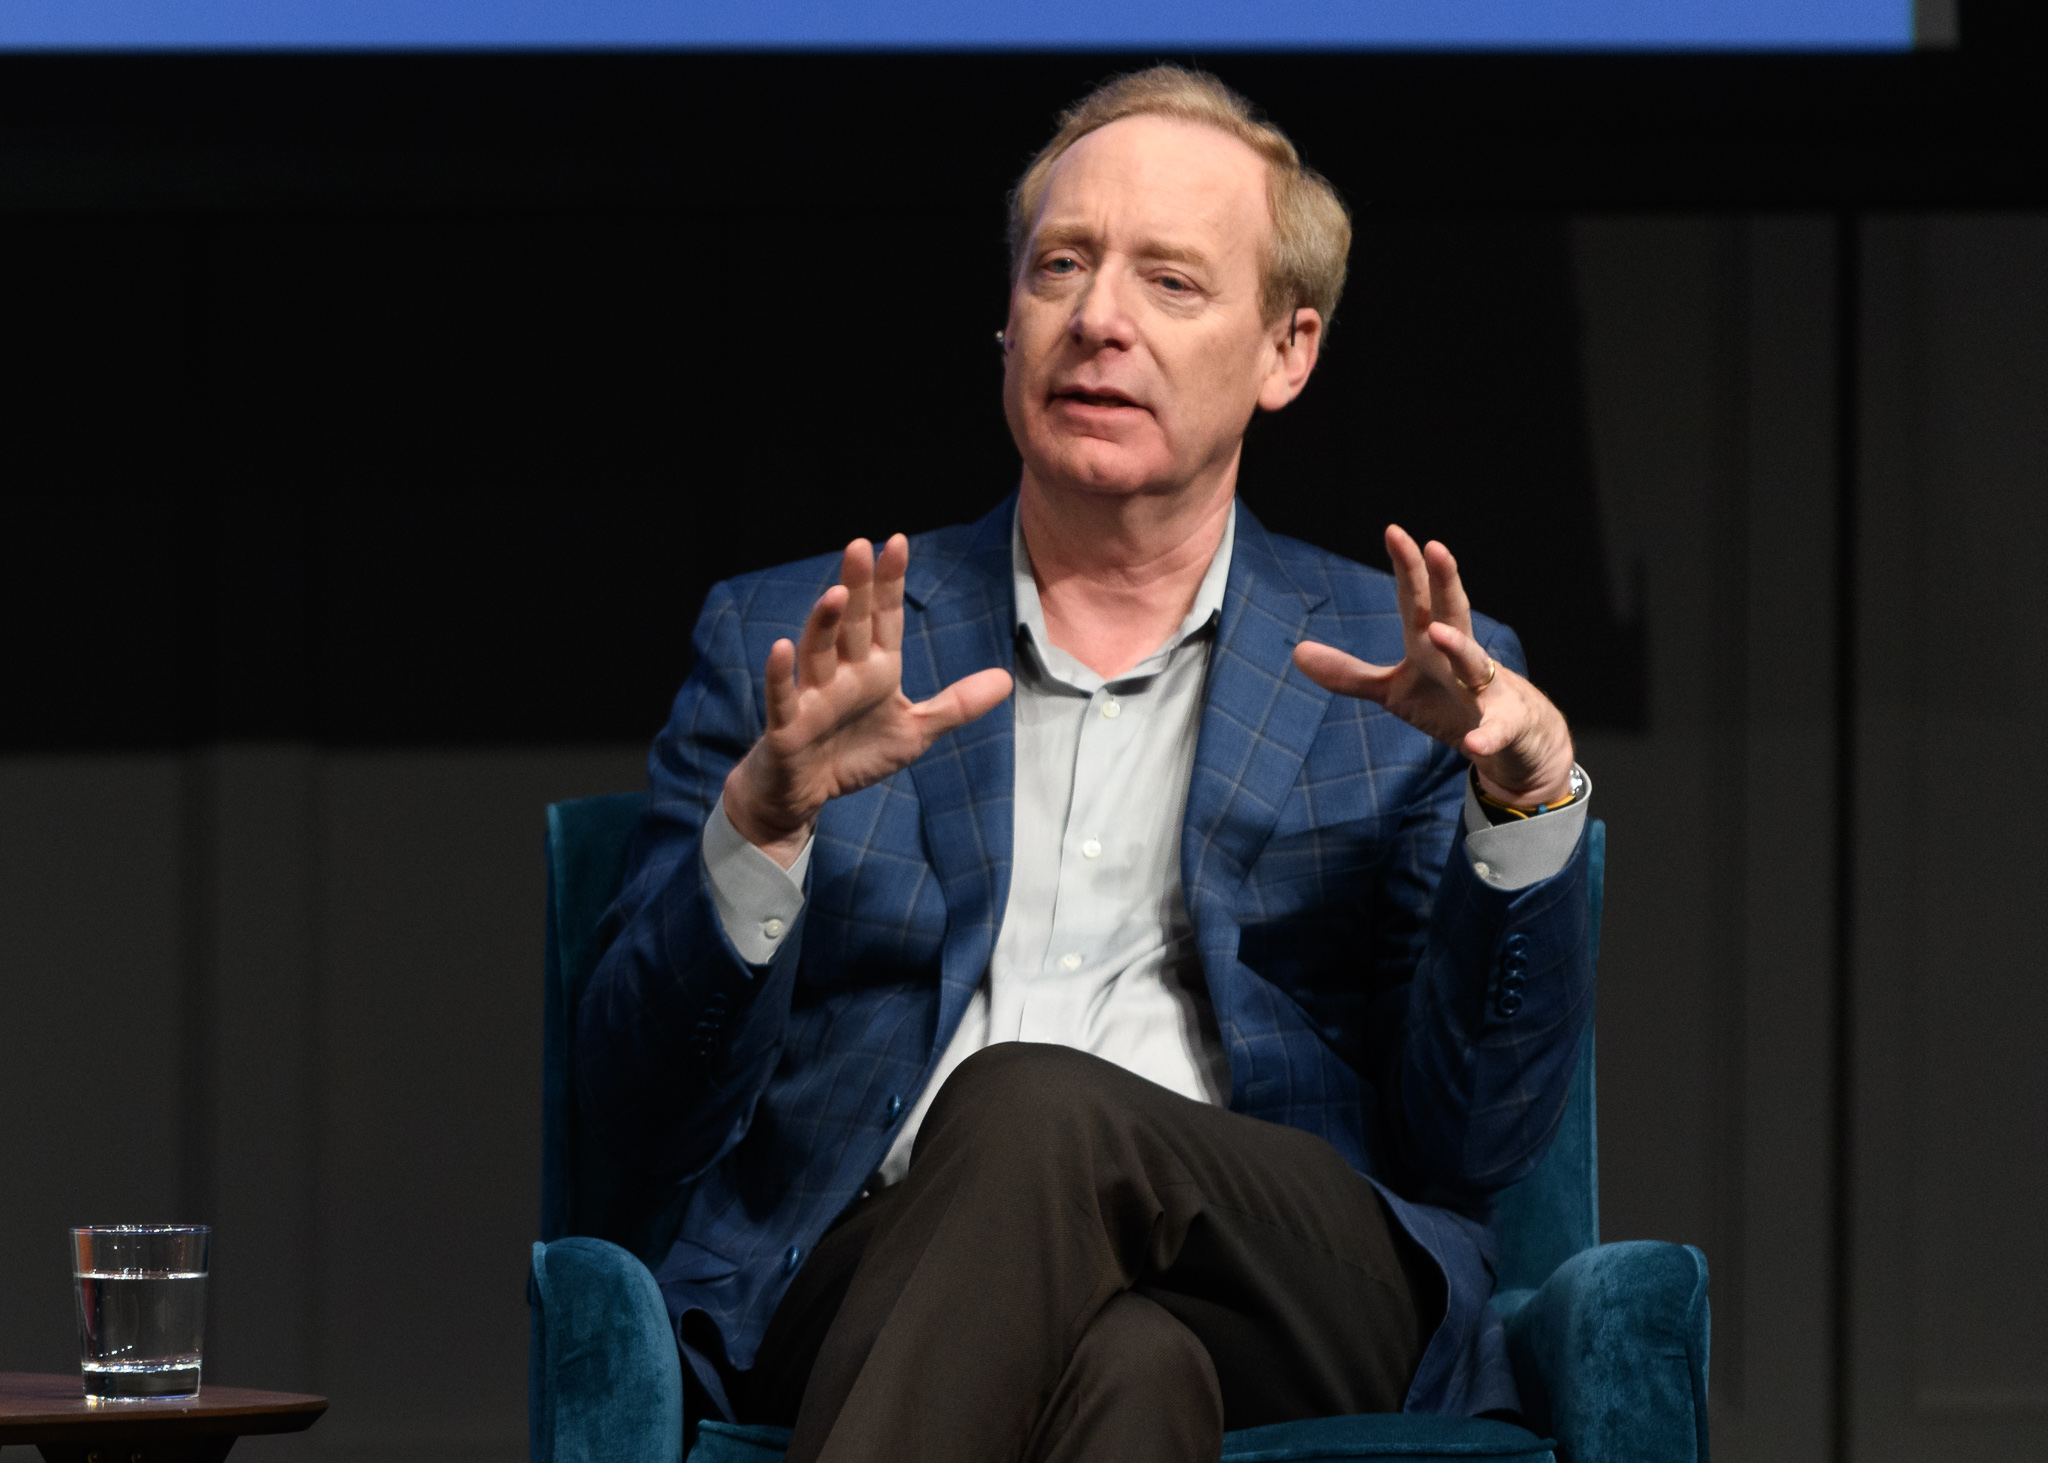 Microsoft's Brad Smith goes after Google again over web content and digital advertising revenue